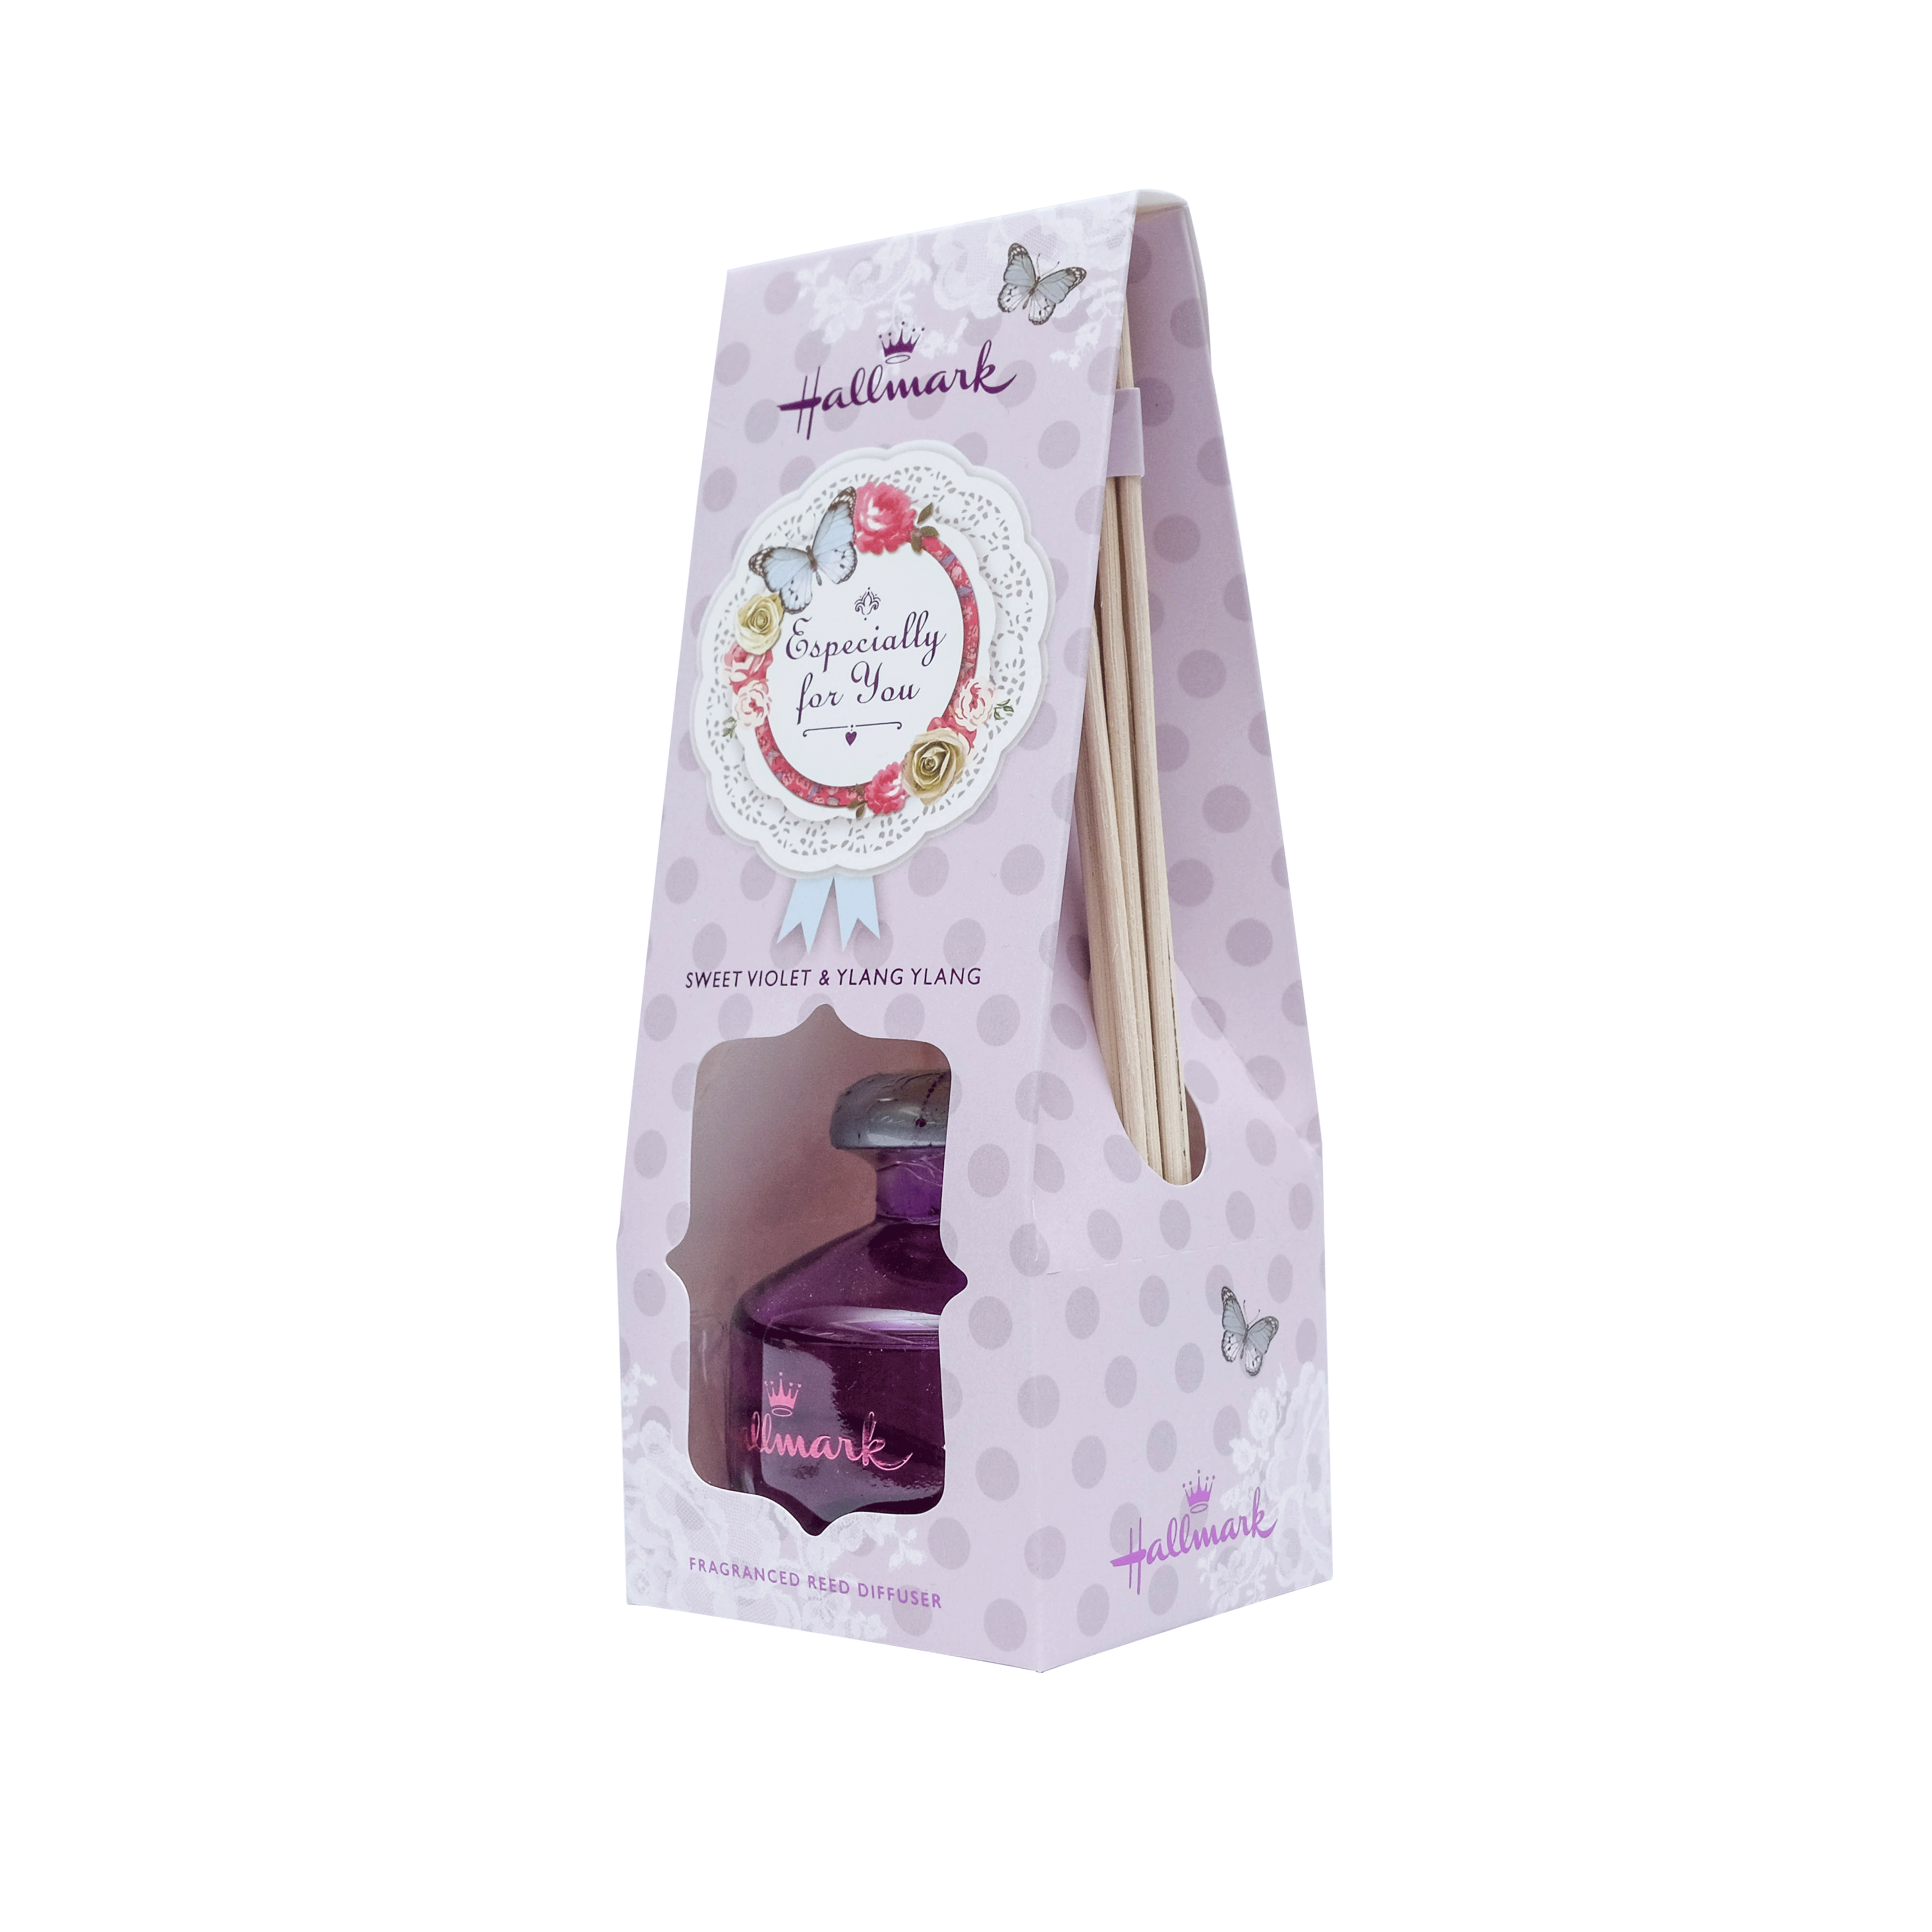 Scents & Candles Diffuser